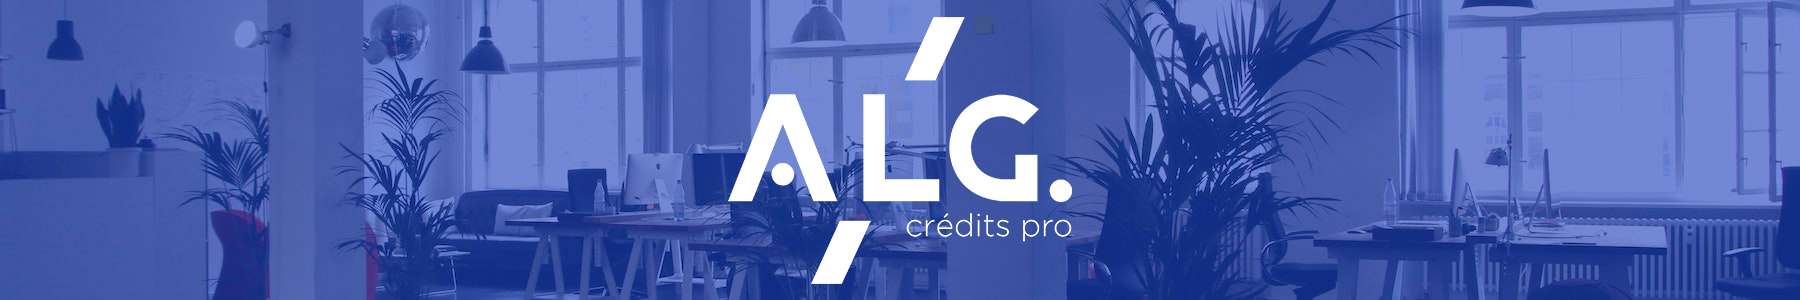 courtier-financement-alg-credits-pro-odace